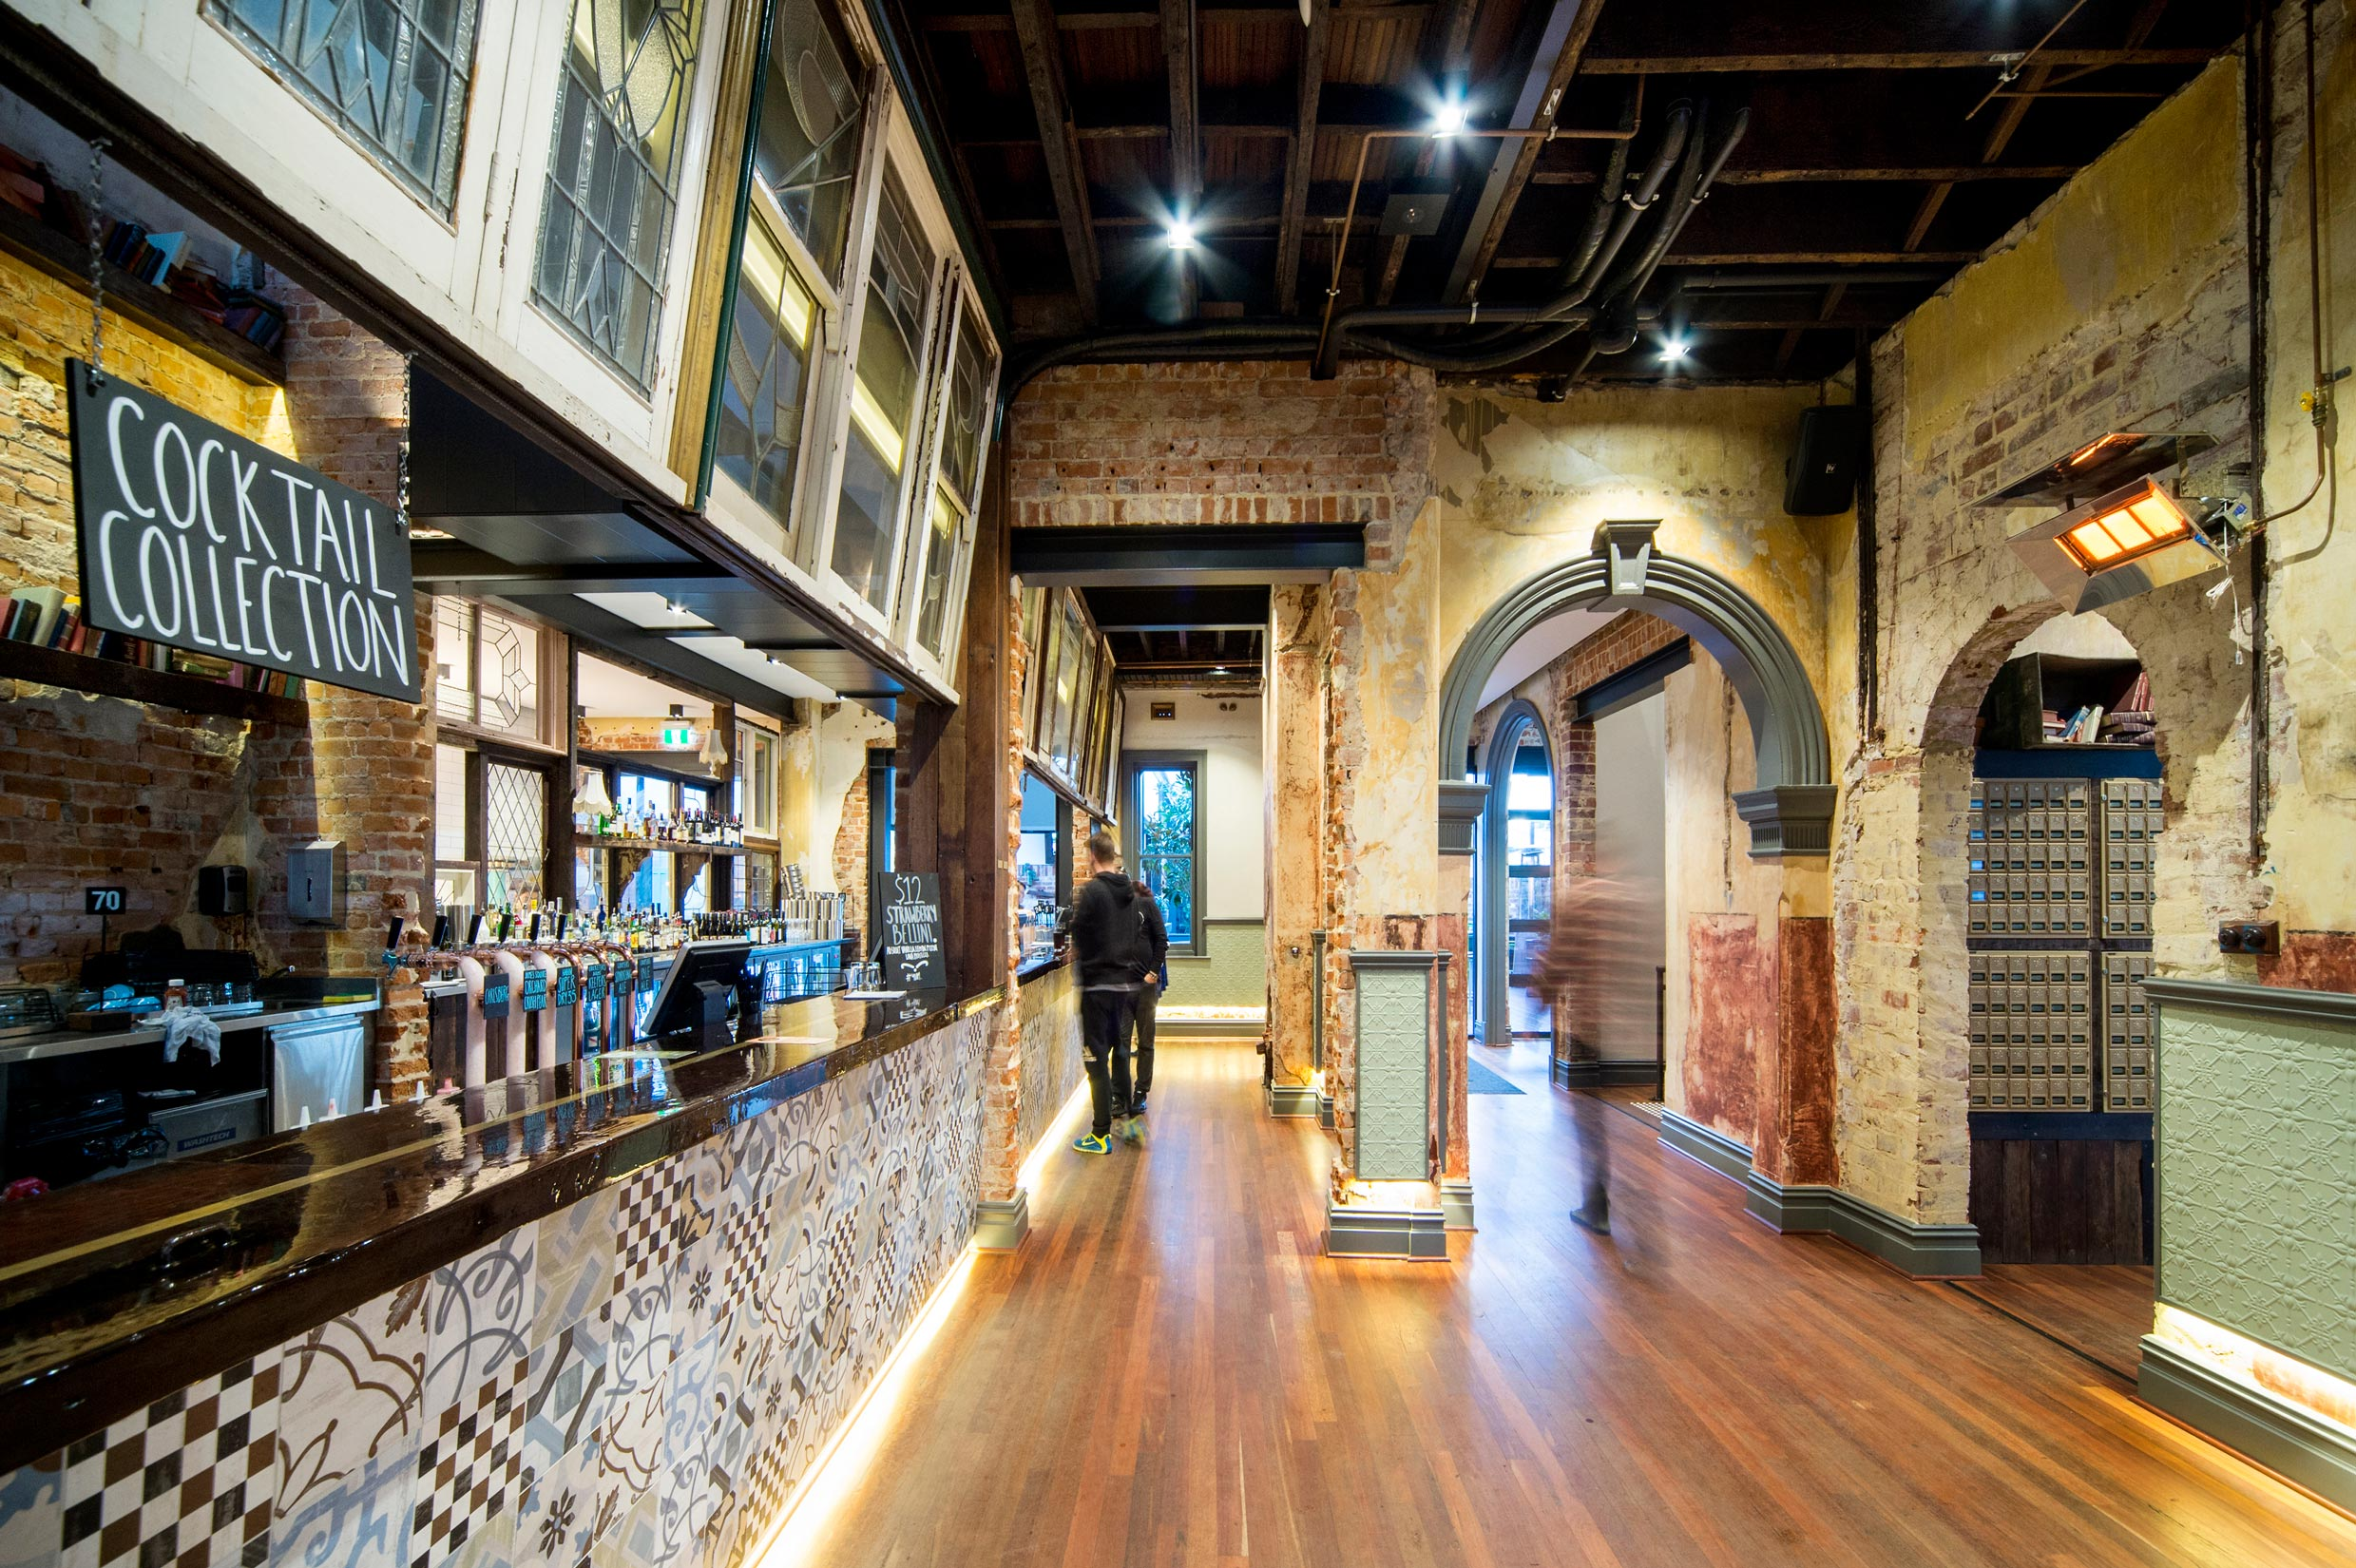 Heritage style bar at the Guildford Hotel with timber floors, tiled bar, exposed brick walls and original archways.